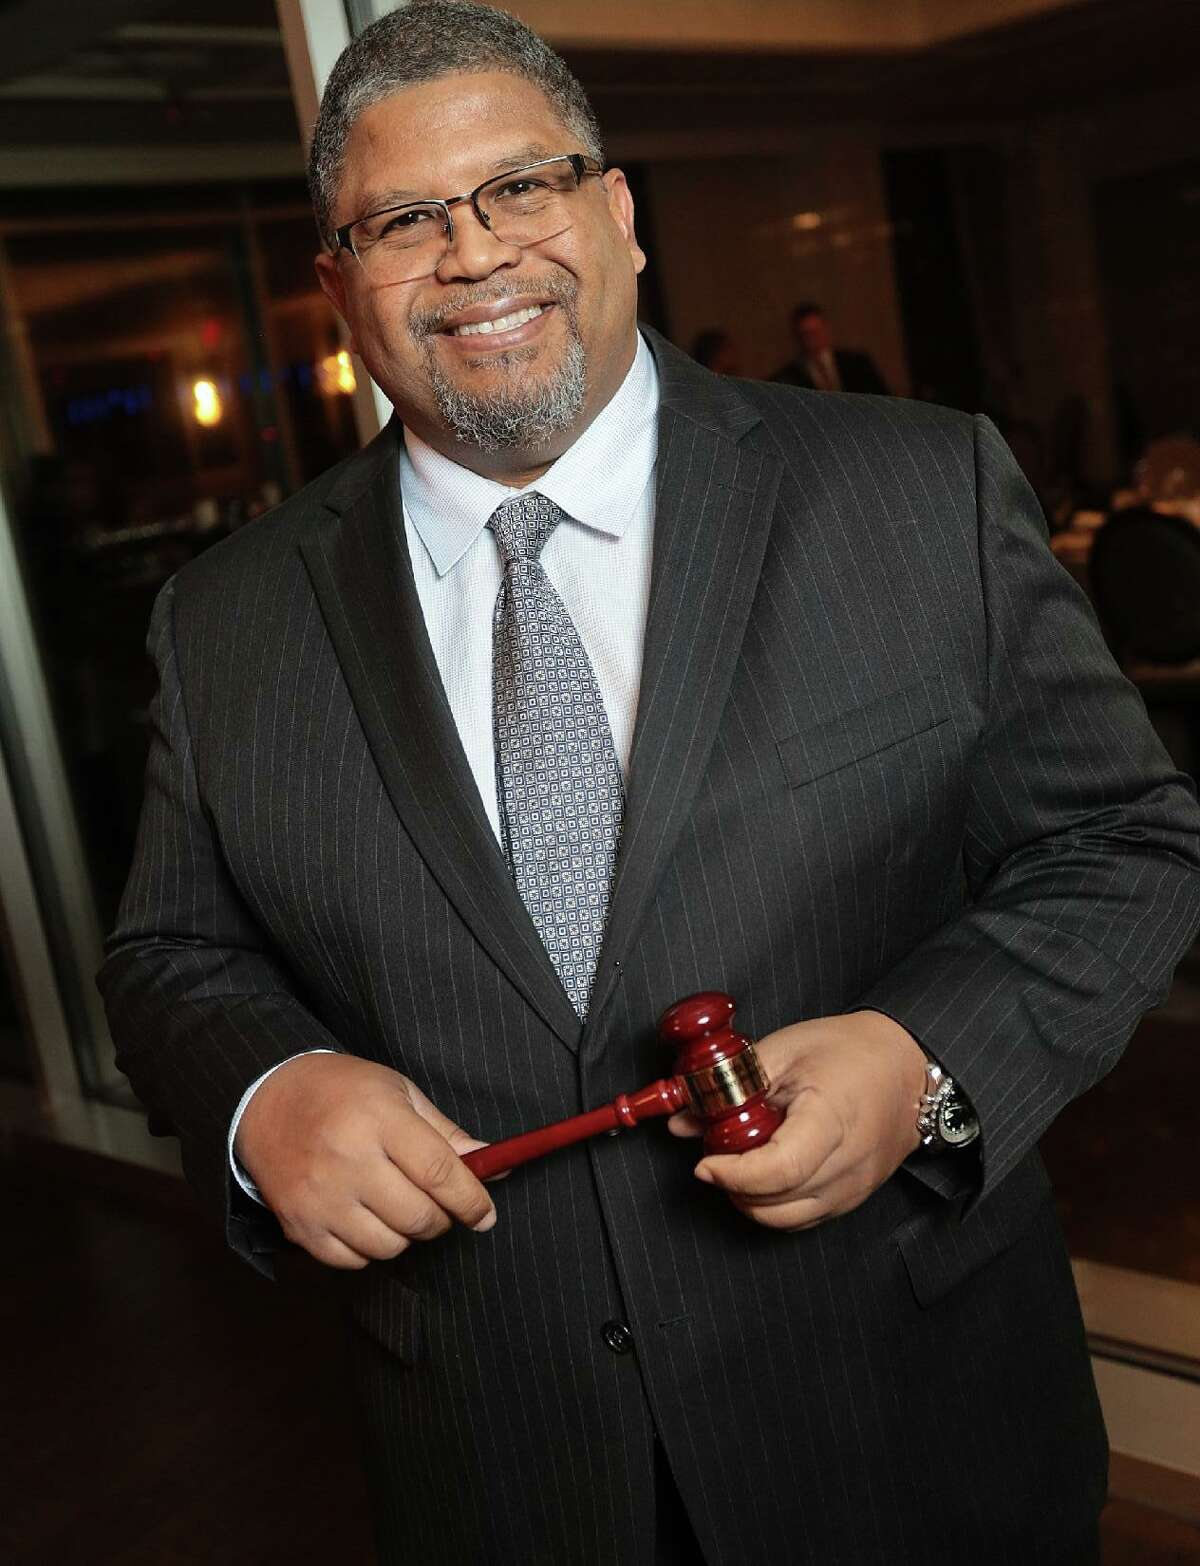 Dr. Dexter Turnquest, a resident of The Woodlands, has been named President of the Houston Academy of Medicine for 2020. Originally from the Bahamas, Turnquest and his wife have lived in this area since 1996.